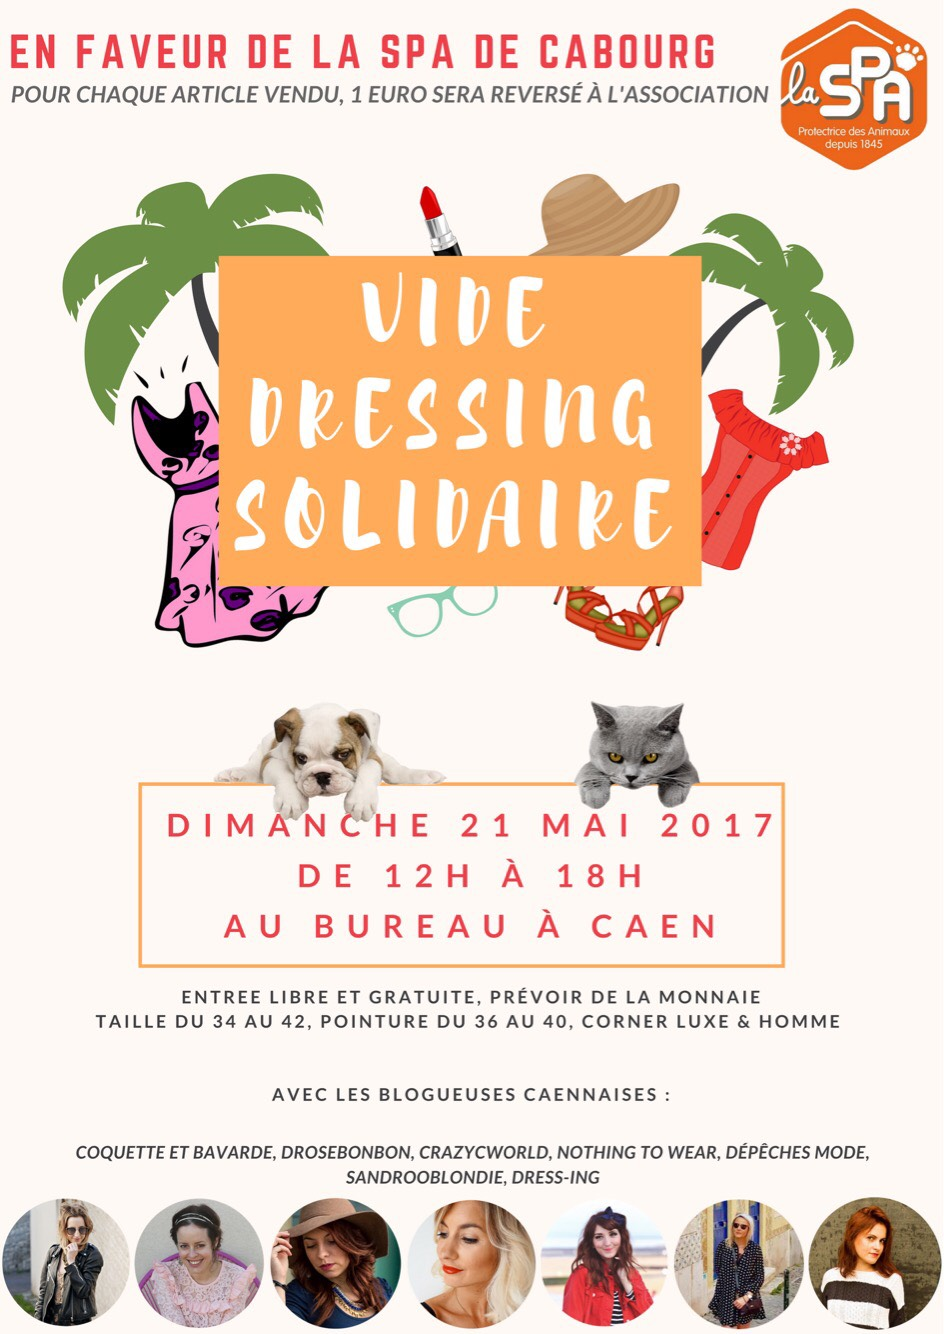 Vide dressing solidaire graphic